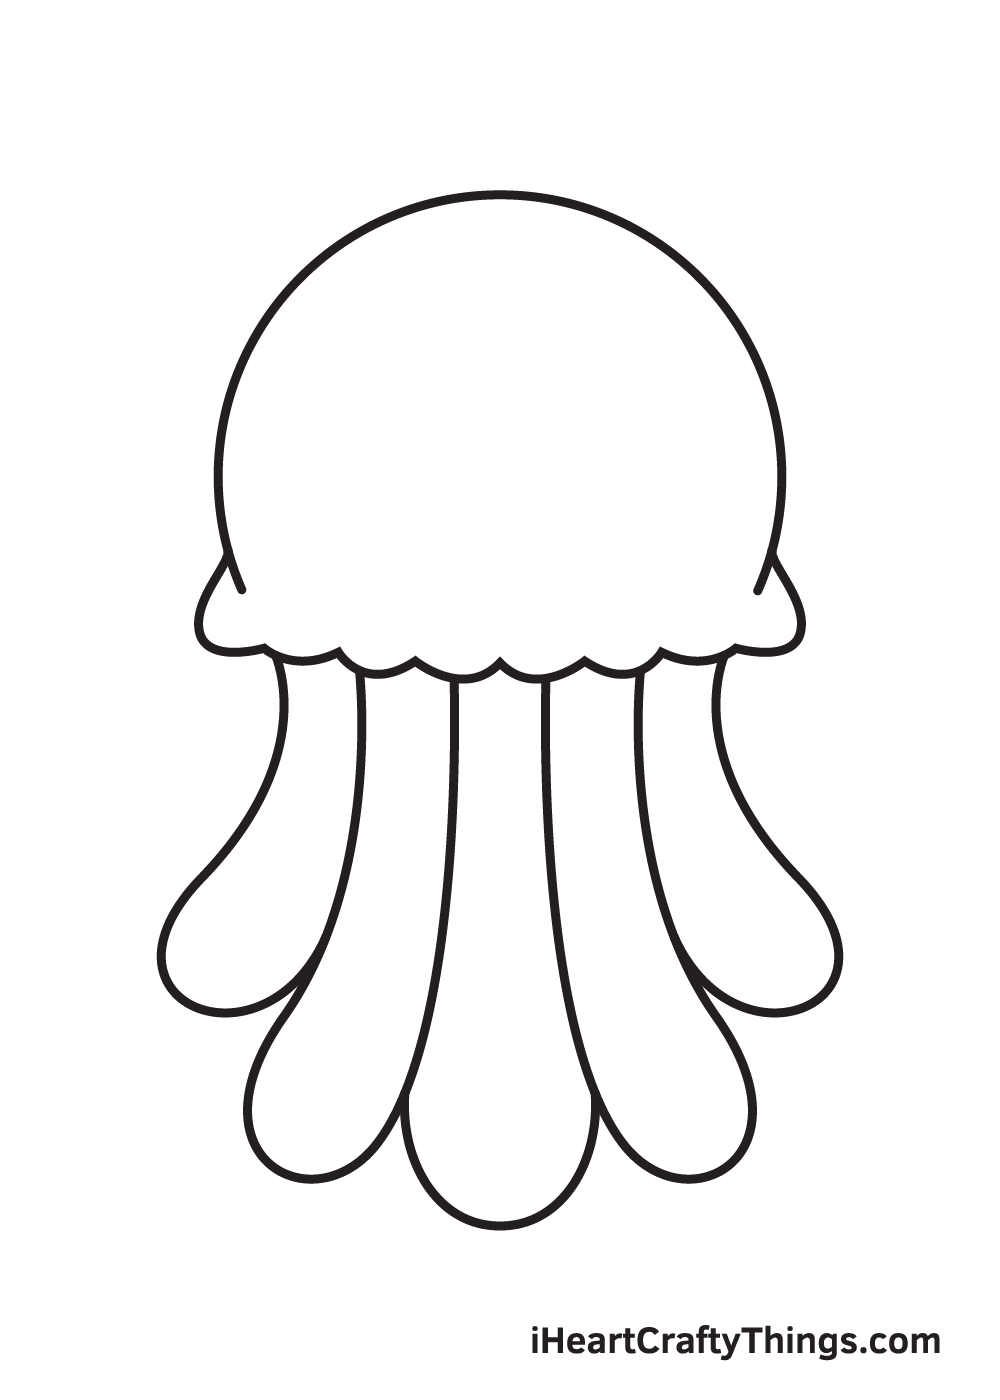 jellyfish drawing step 7